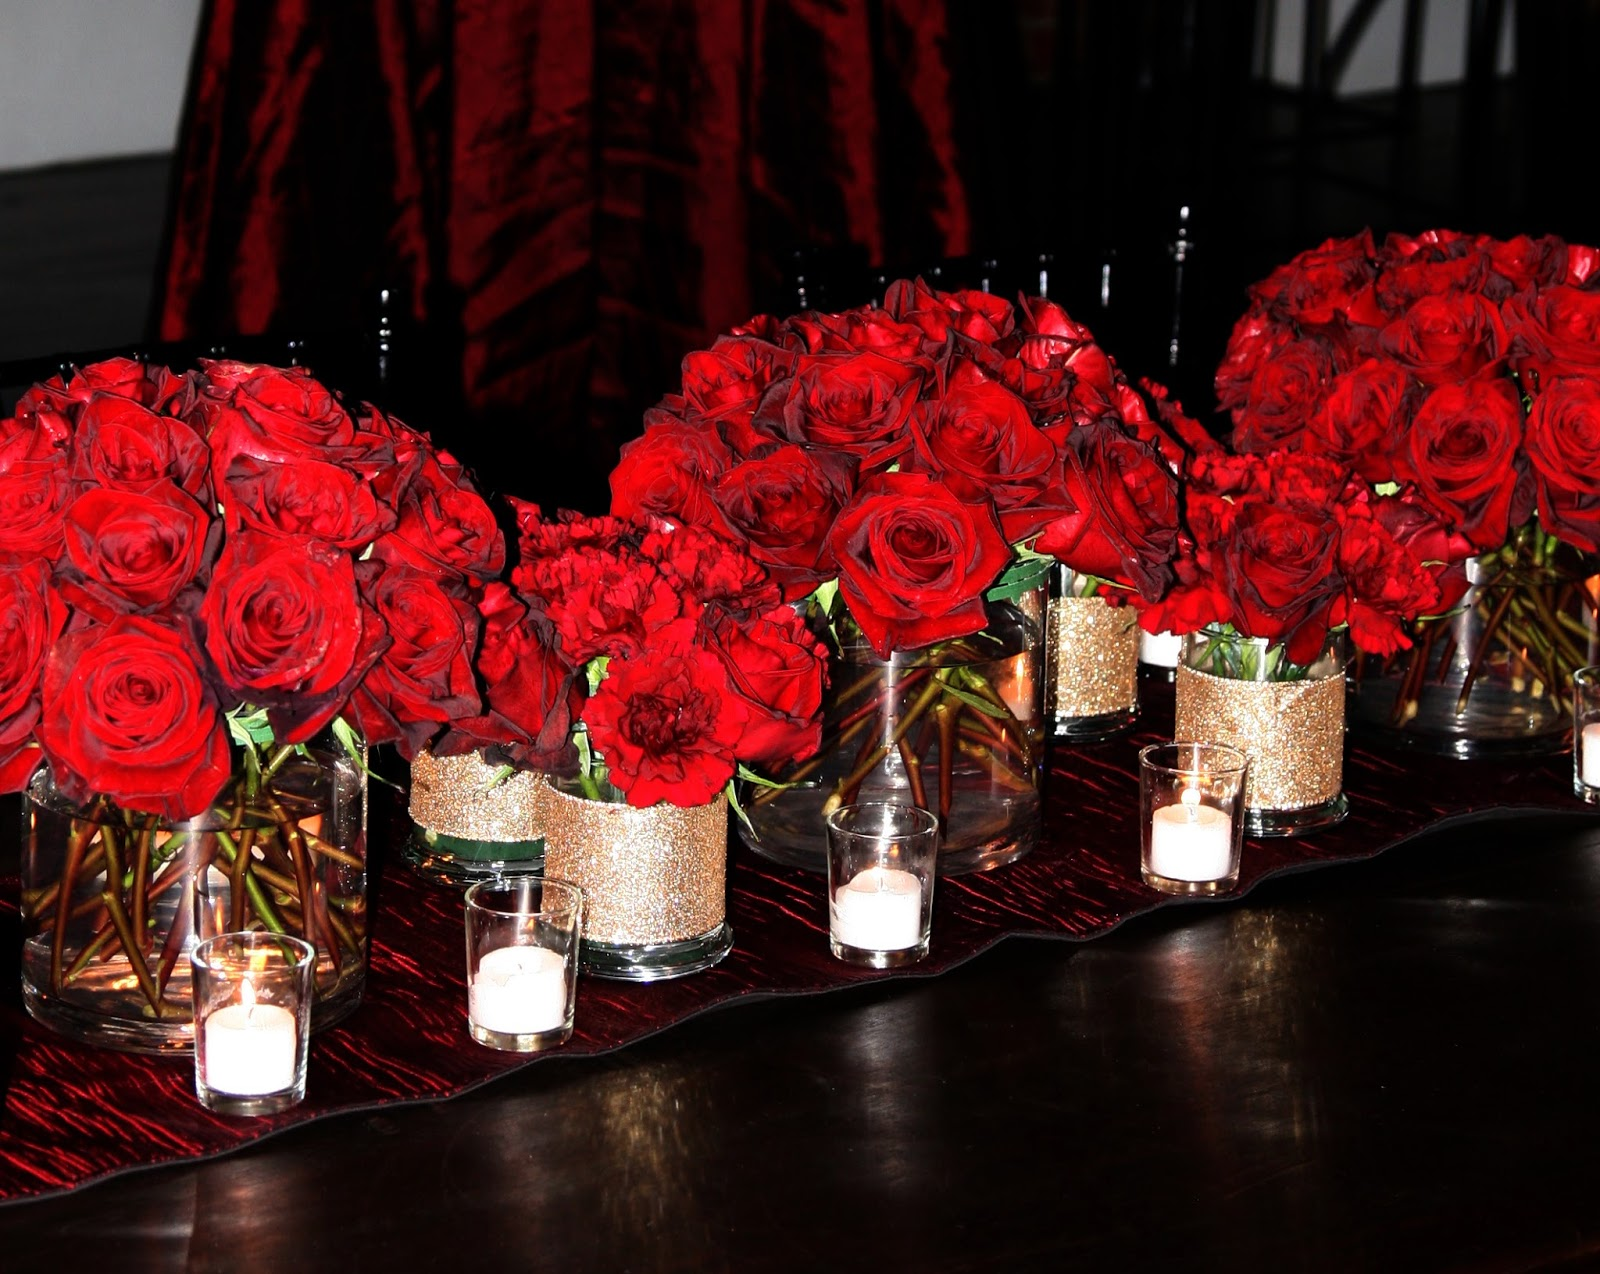 Candle lit winter wedding studio in bloom candle lit winter wedding solutioingenieria